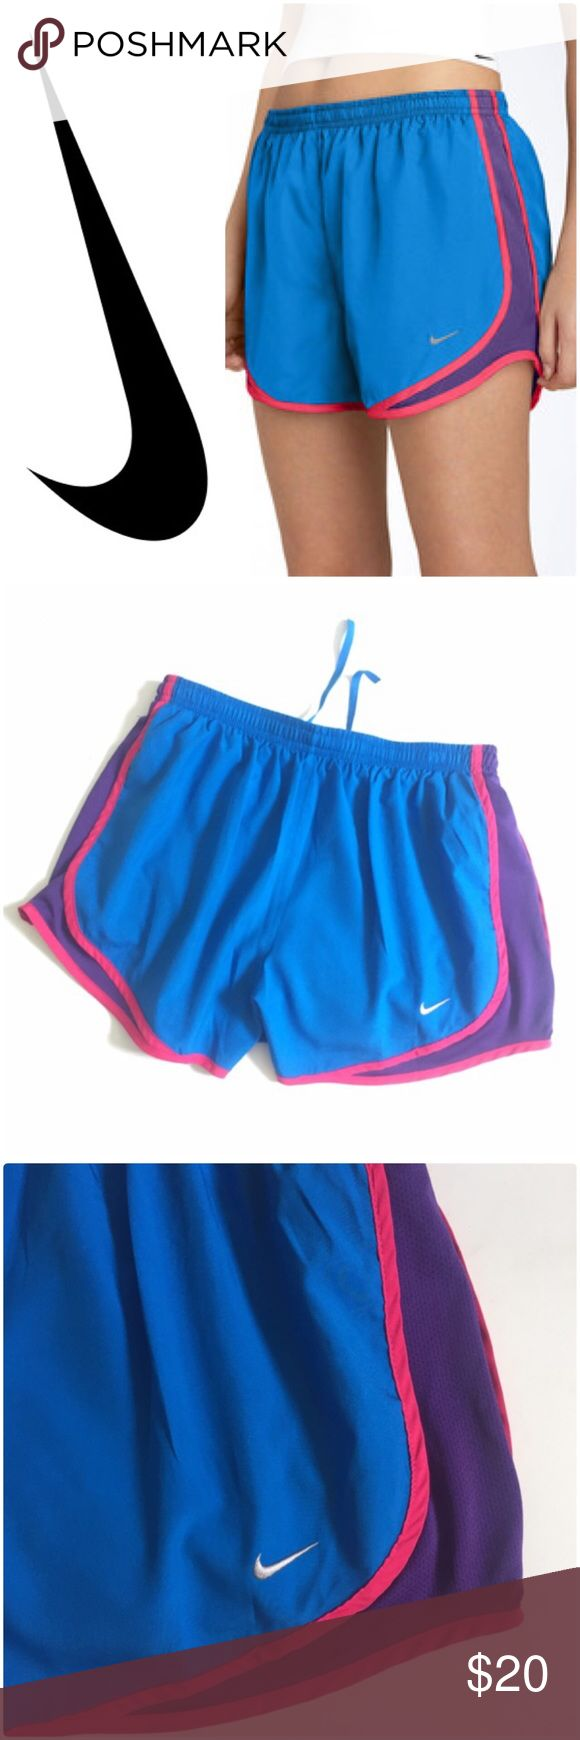 Nike Tempo Track Shorts Nike Tempo Track Shorts Photo Blue/Club Purple in Good Preowned Condition. Nike Shorts